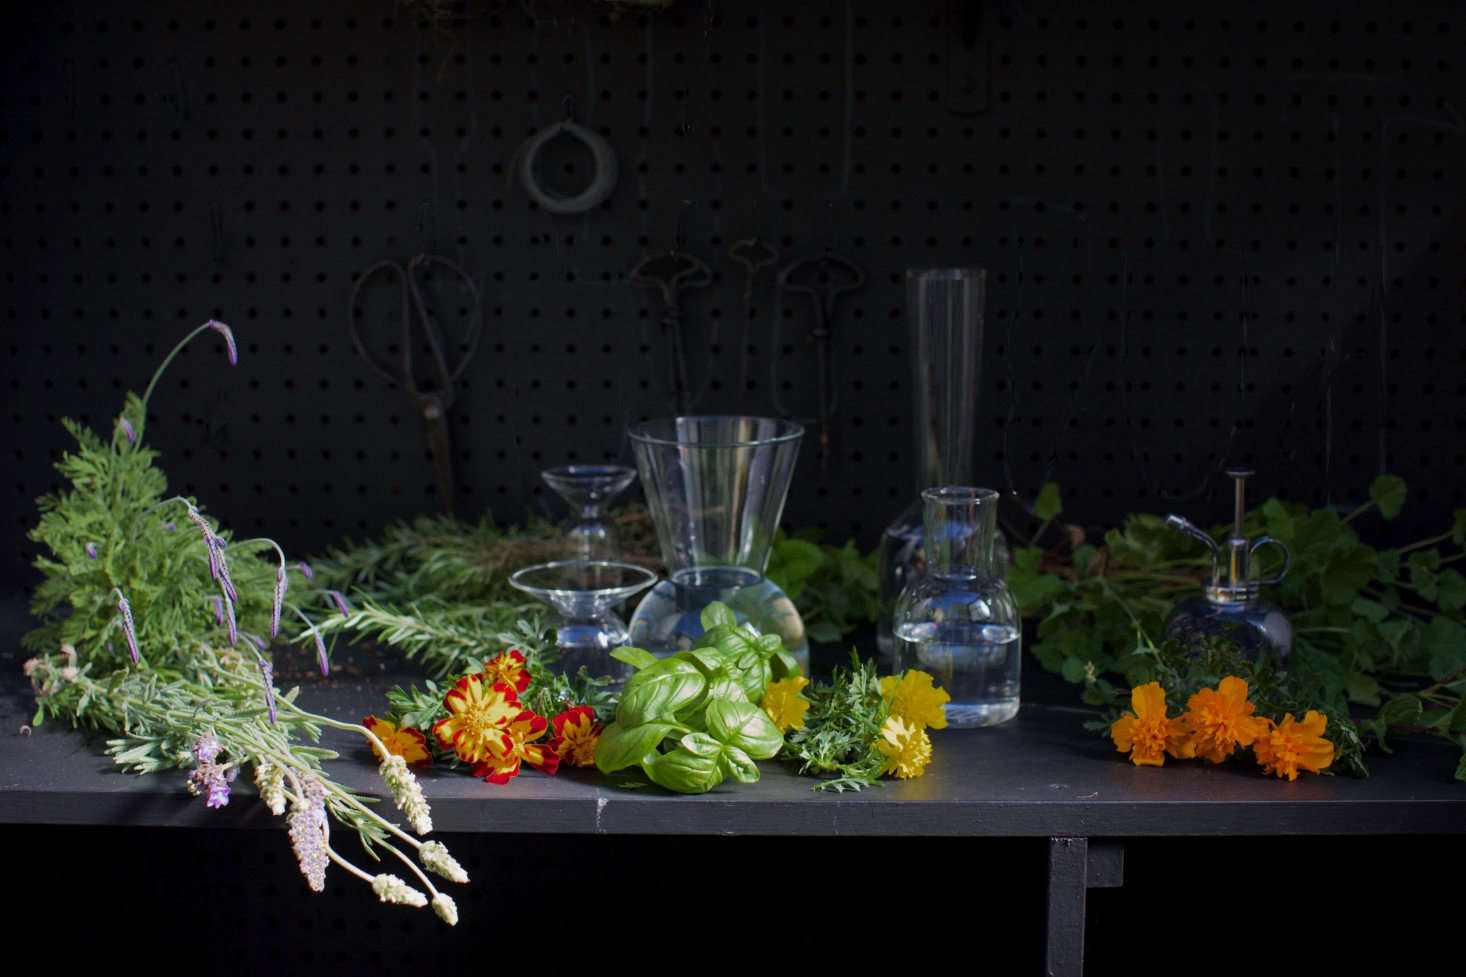 Marigolds, basil, and other herbs also mingle in Michelle&#8